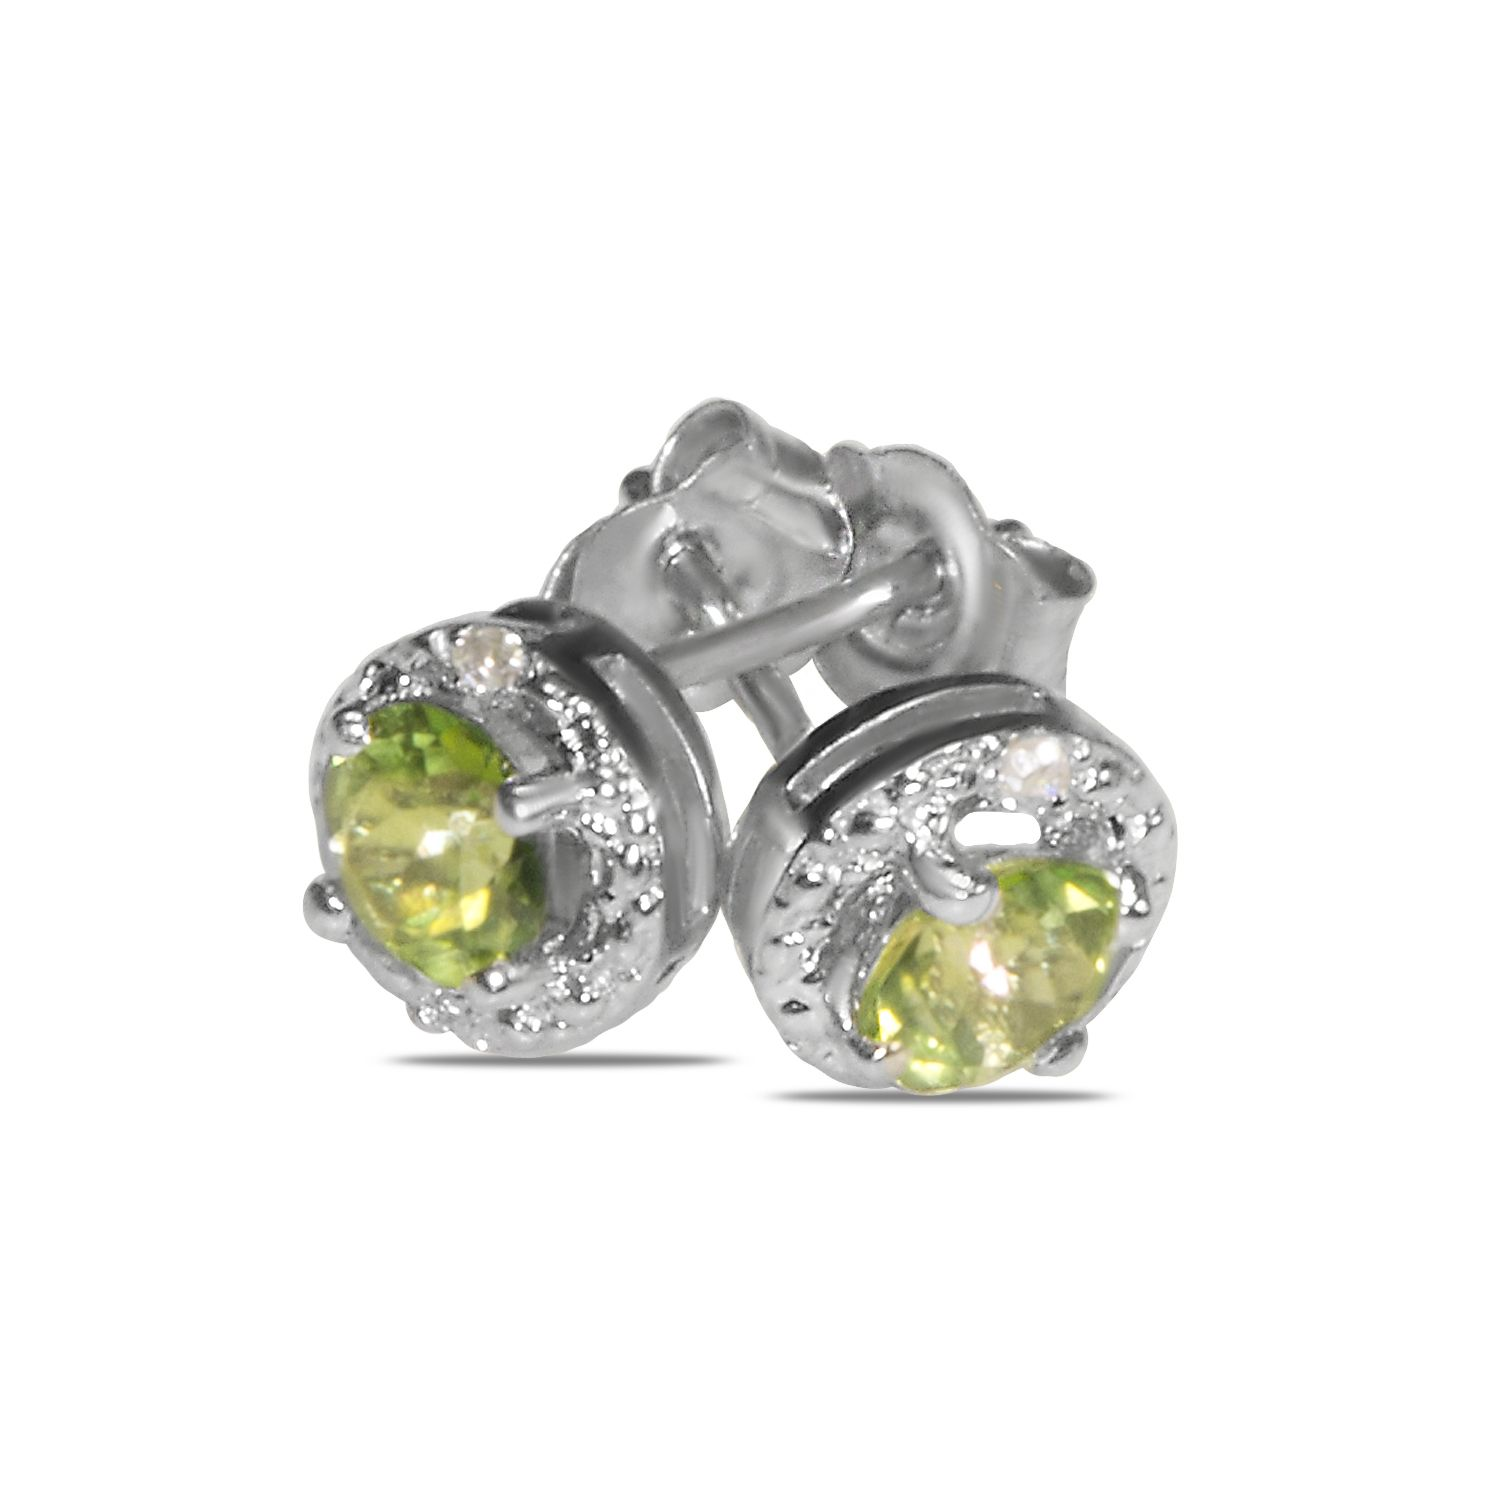 Amazon NissoniJewelry presents 02CT Diamond Earrings with Peridot